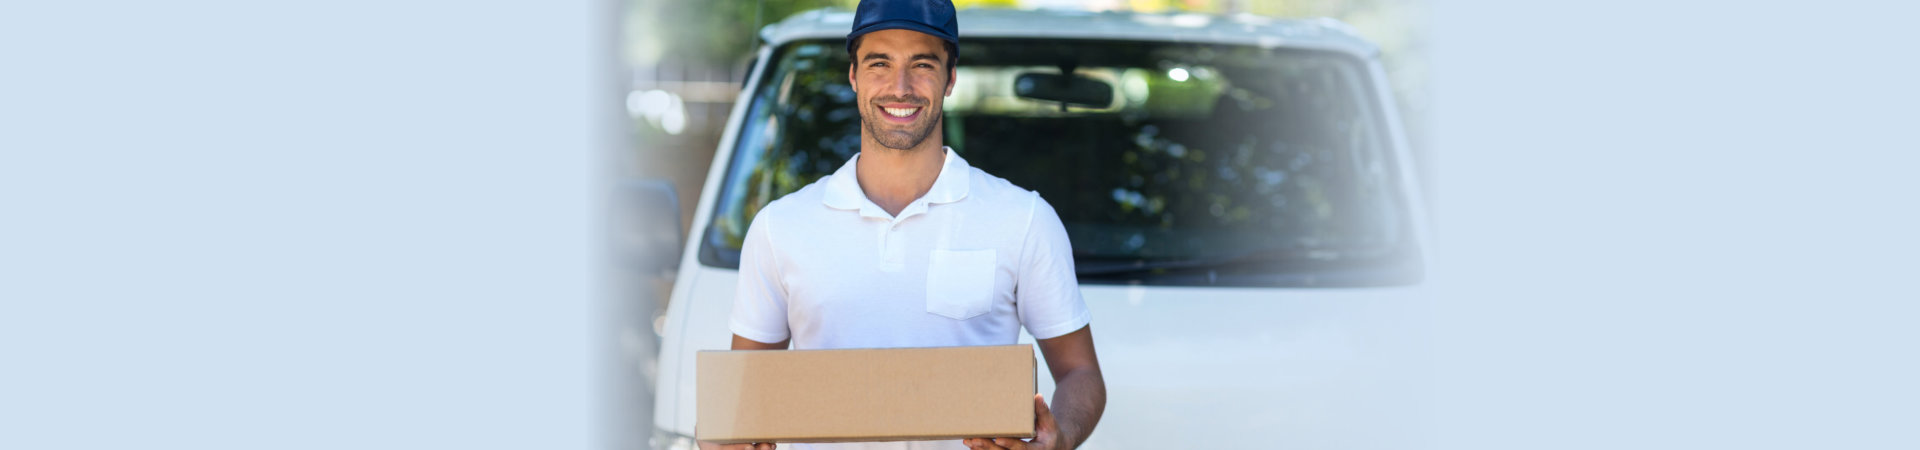 delivery man holding a box